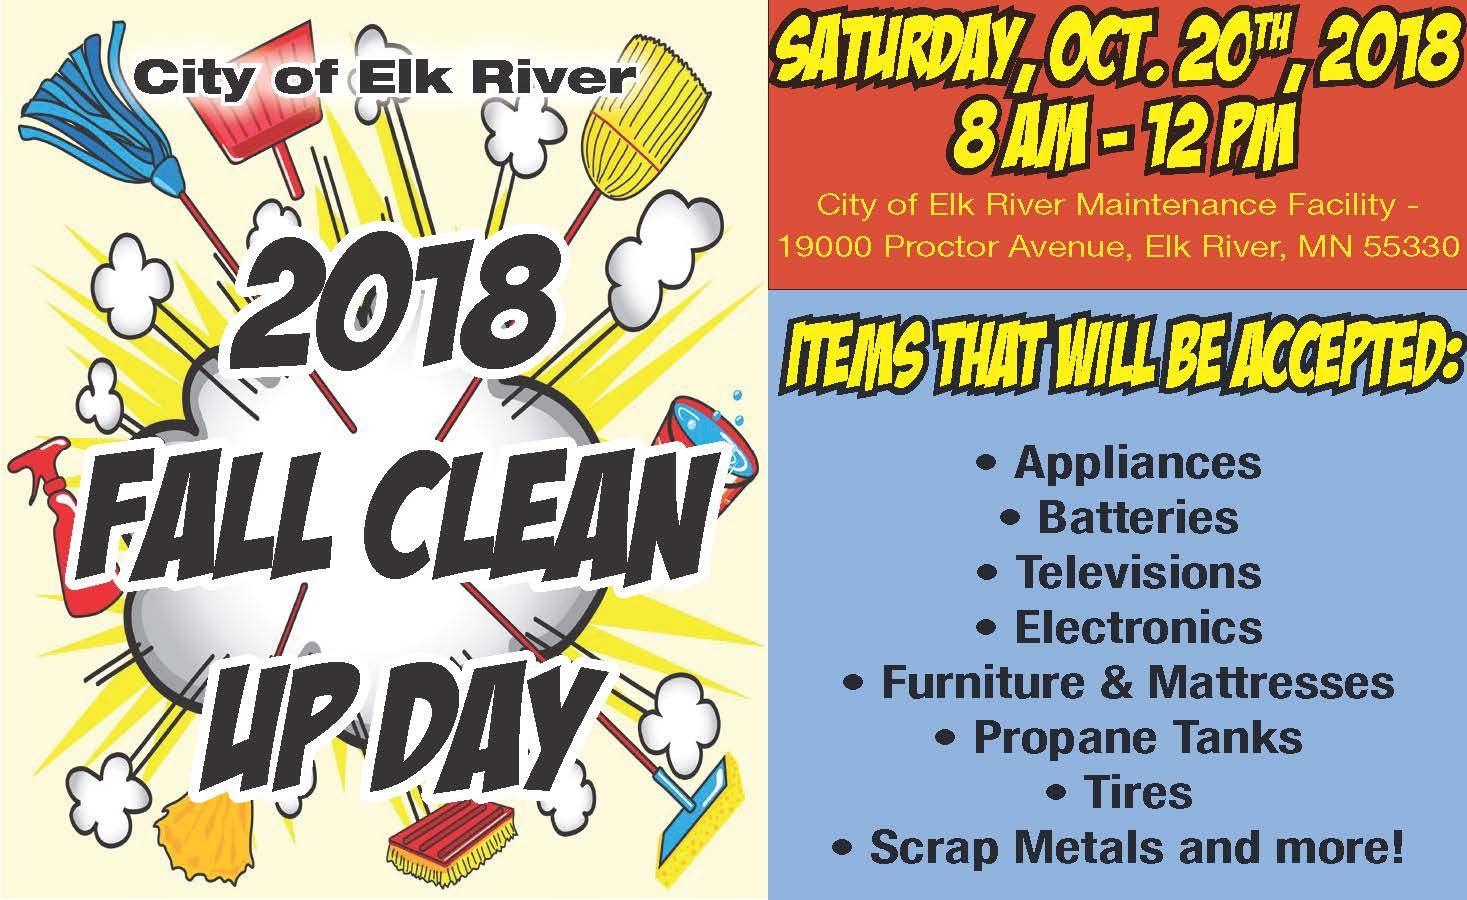 Fall Clean Up Day 2018